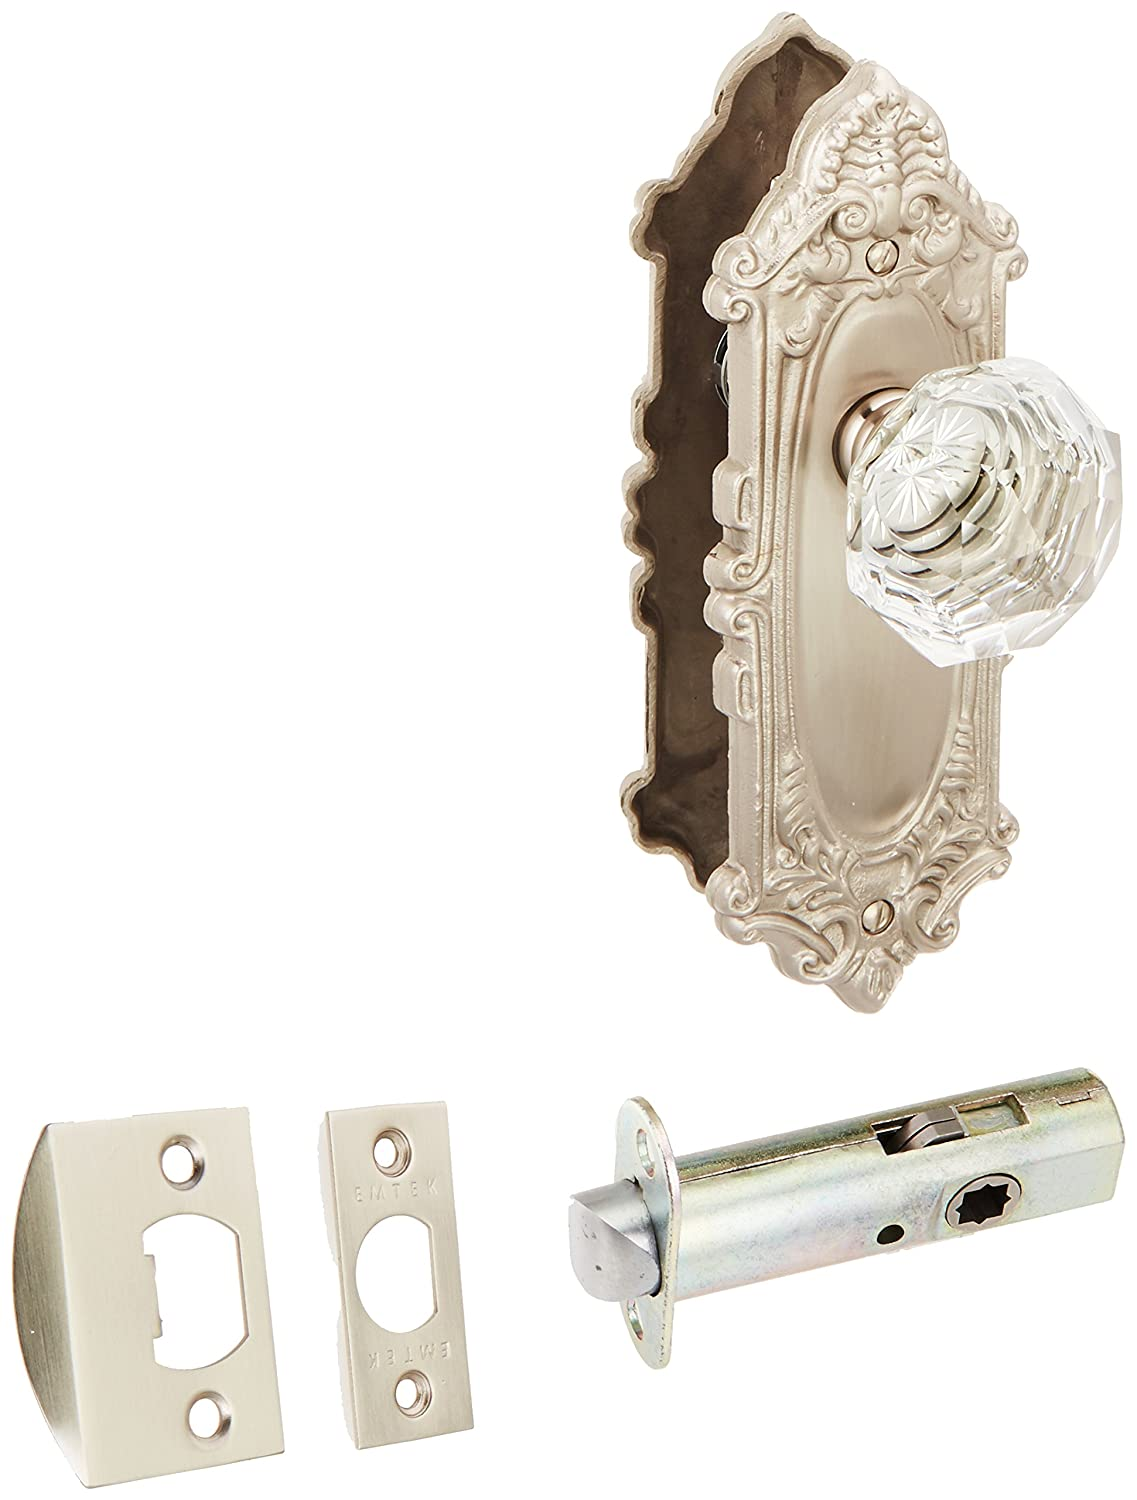 Largoデザインドアセットwithダイヤモンドクリスタルノブ、in 4 Finishes 7.75 inches tall Satin Nickel, Privacy 2 3/8 Satin Nickel, Privacy 2 3/8 B005TXK5US